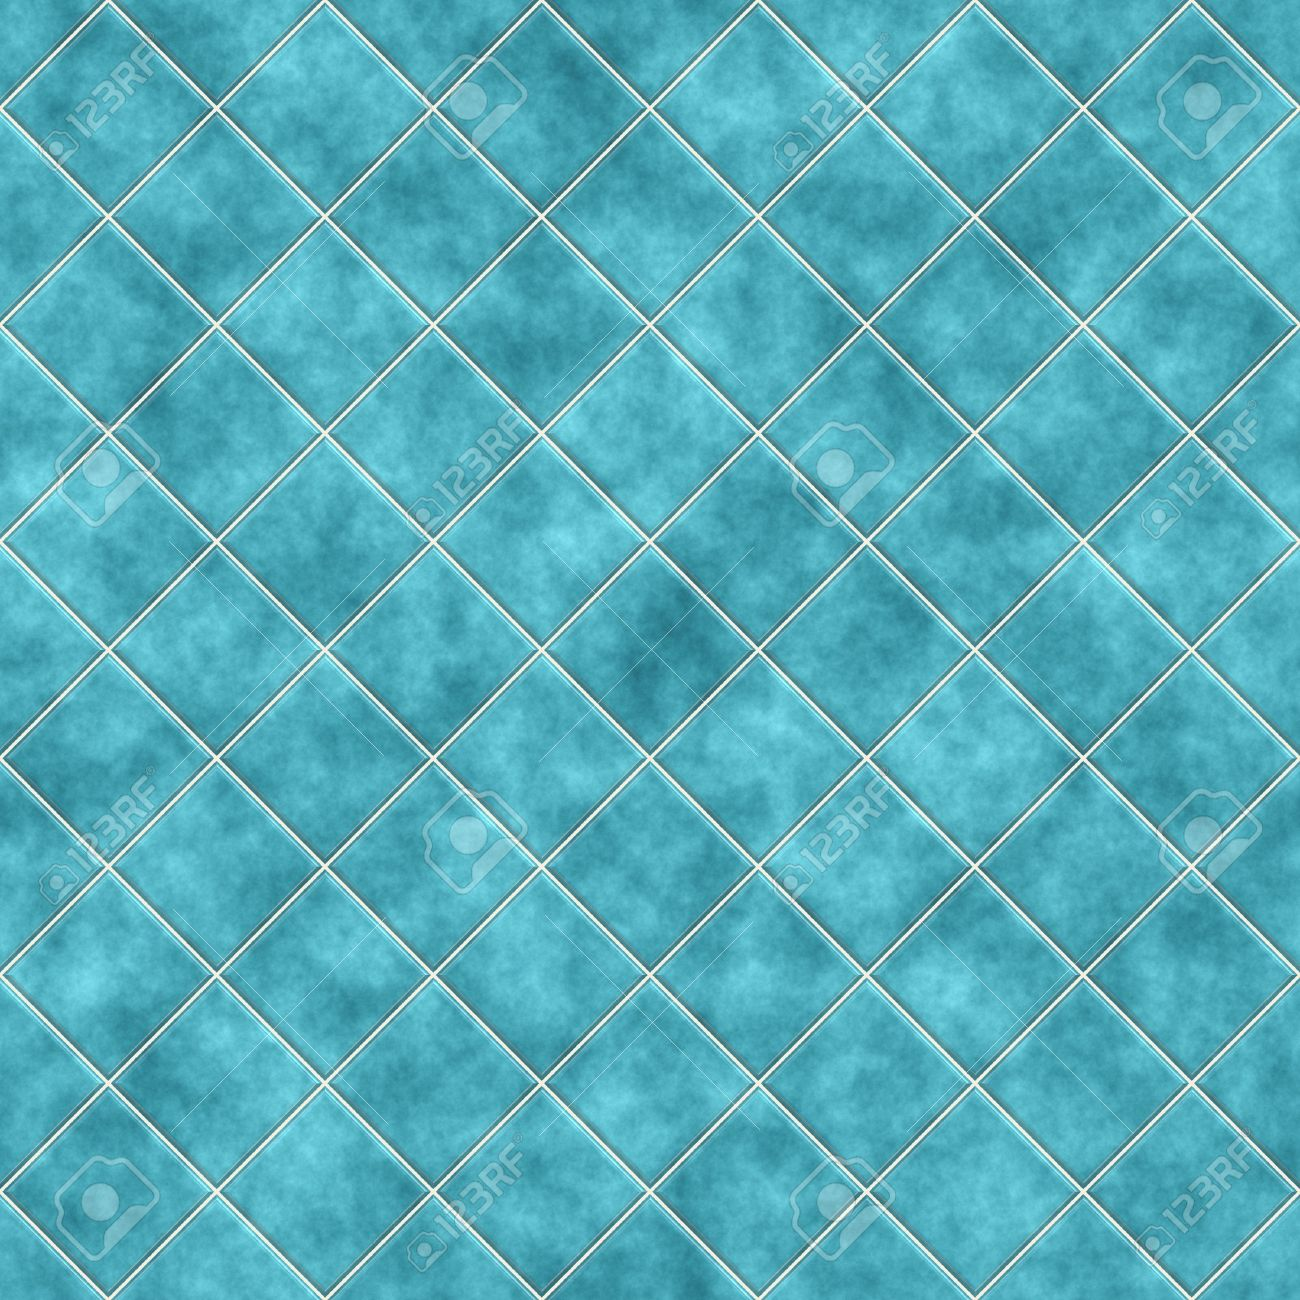 Seamless Blue Tiles Texture Background, Kitchen Or Bathroom Concept ...